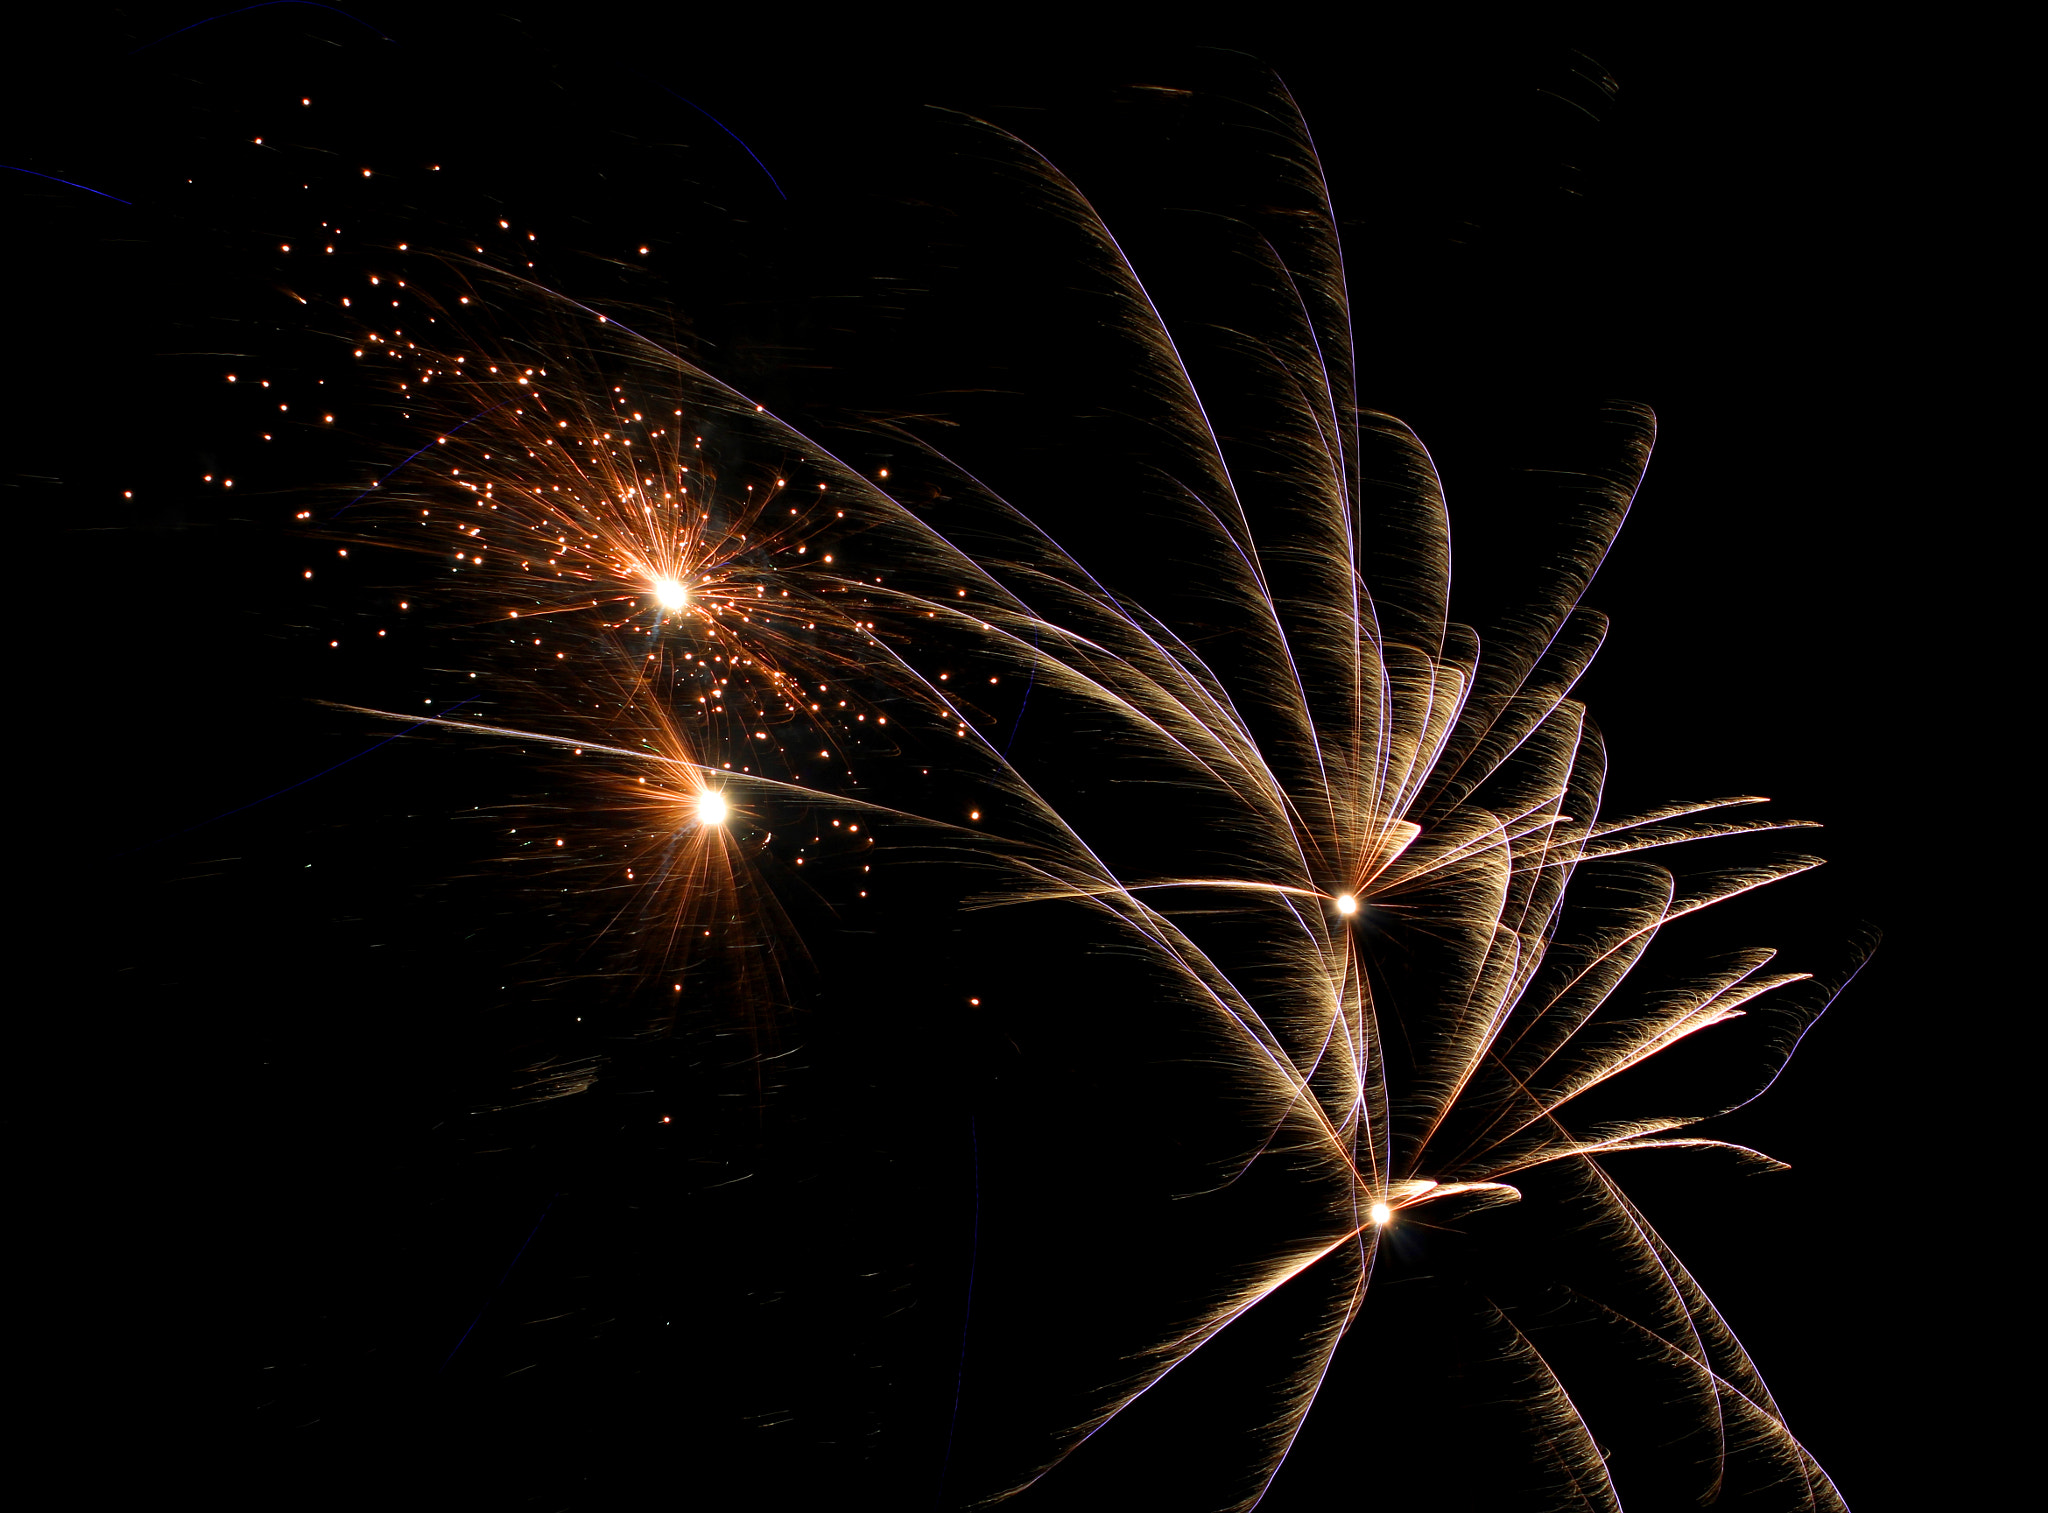 Photograph Fireworks by Victoria Rodriguez on 500px